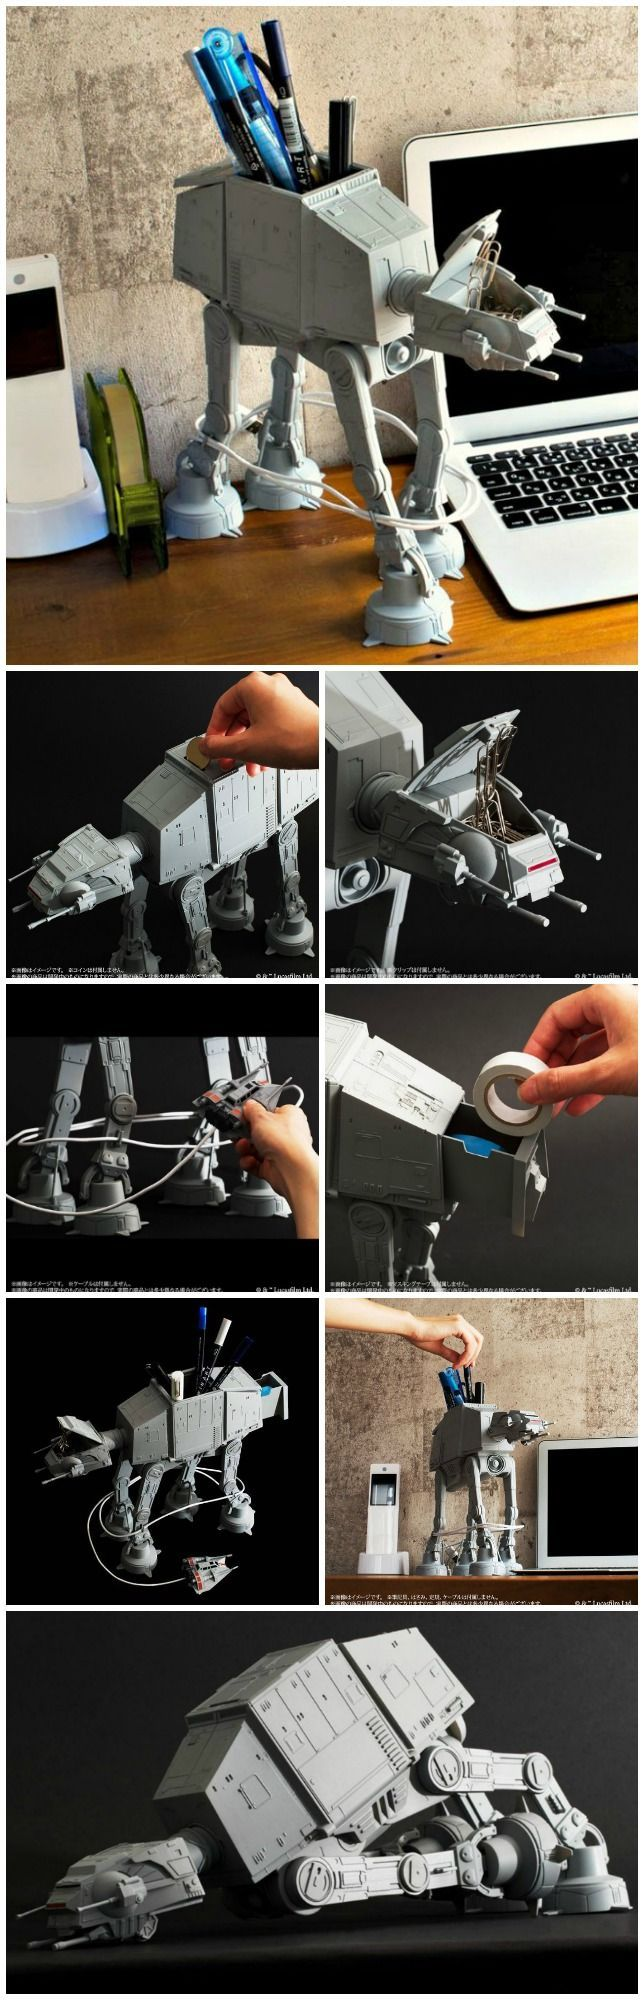 The AT-AT Multi Stand is a 10 tall, highly detailed and poseable desk caddy that comes with a cable organizer that wraps the cable around its legs.